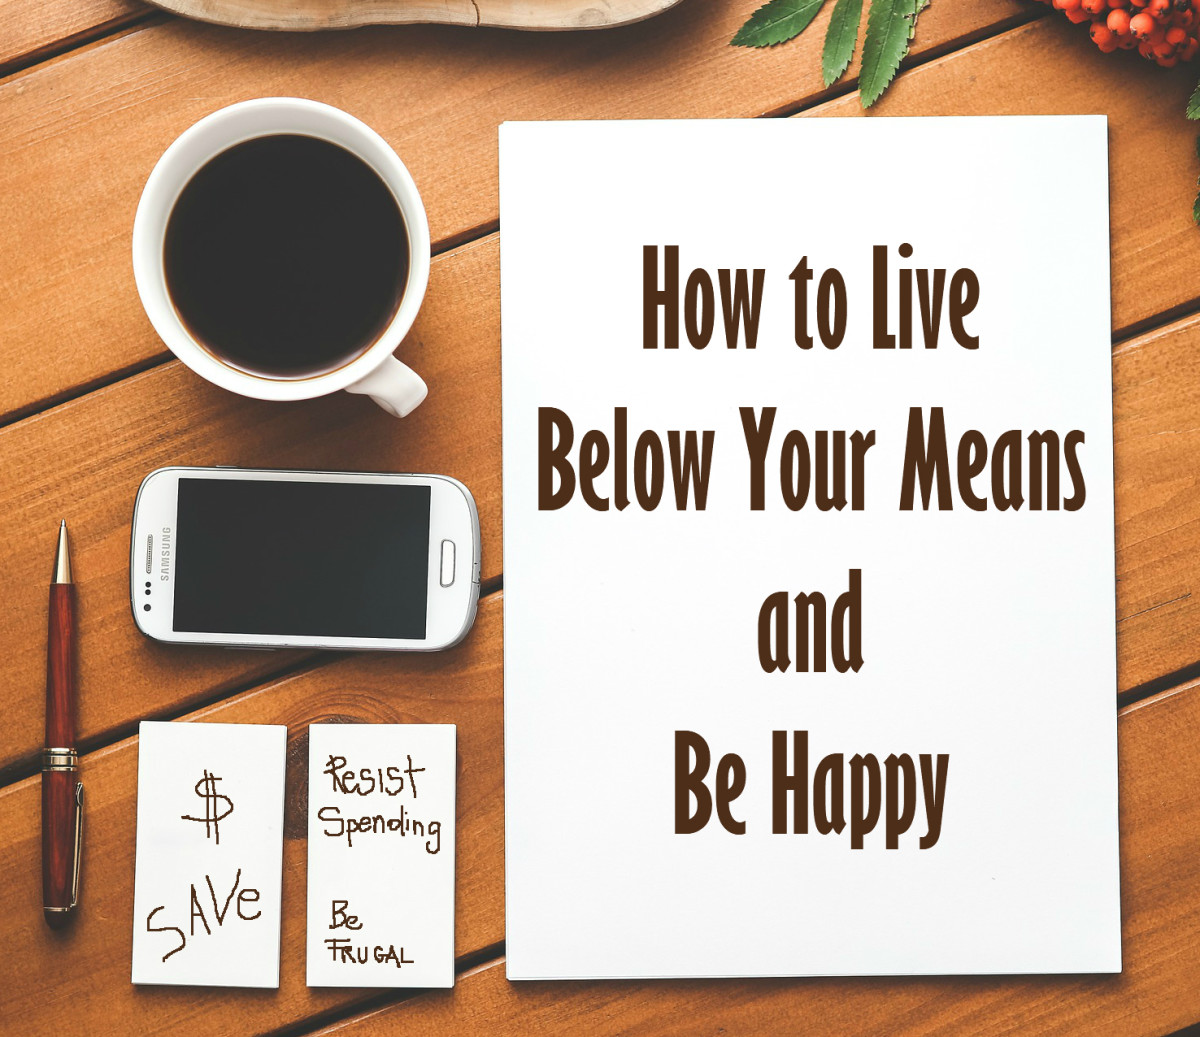 How to Live Below Your Means and Be Happy